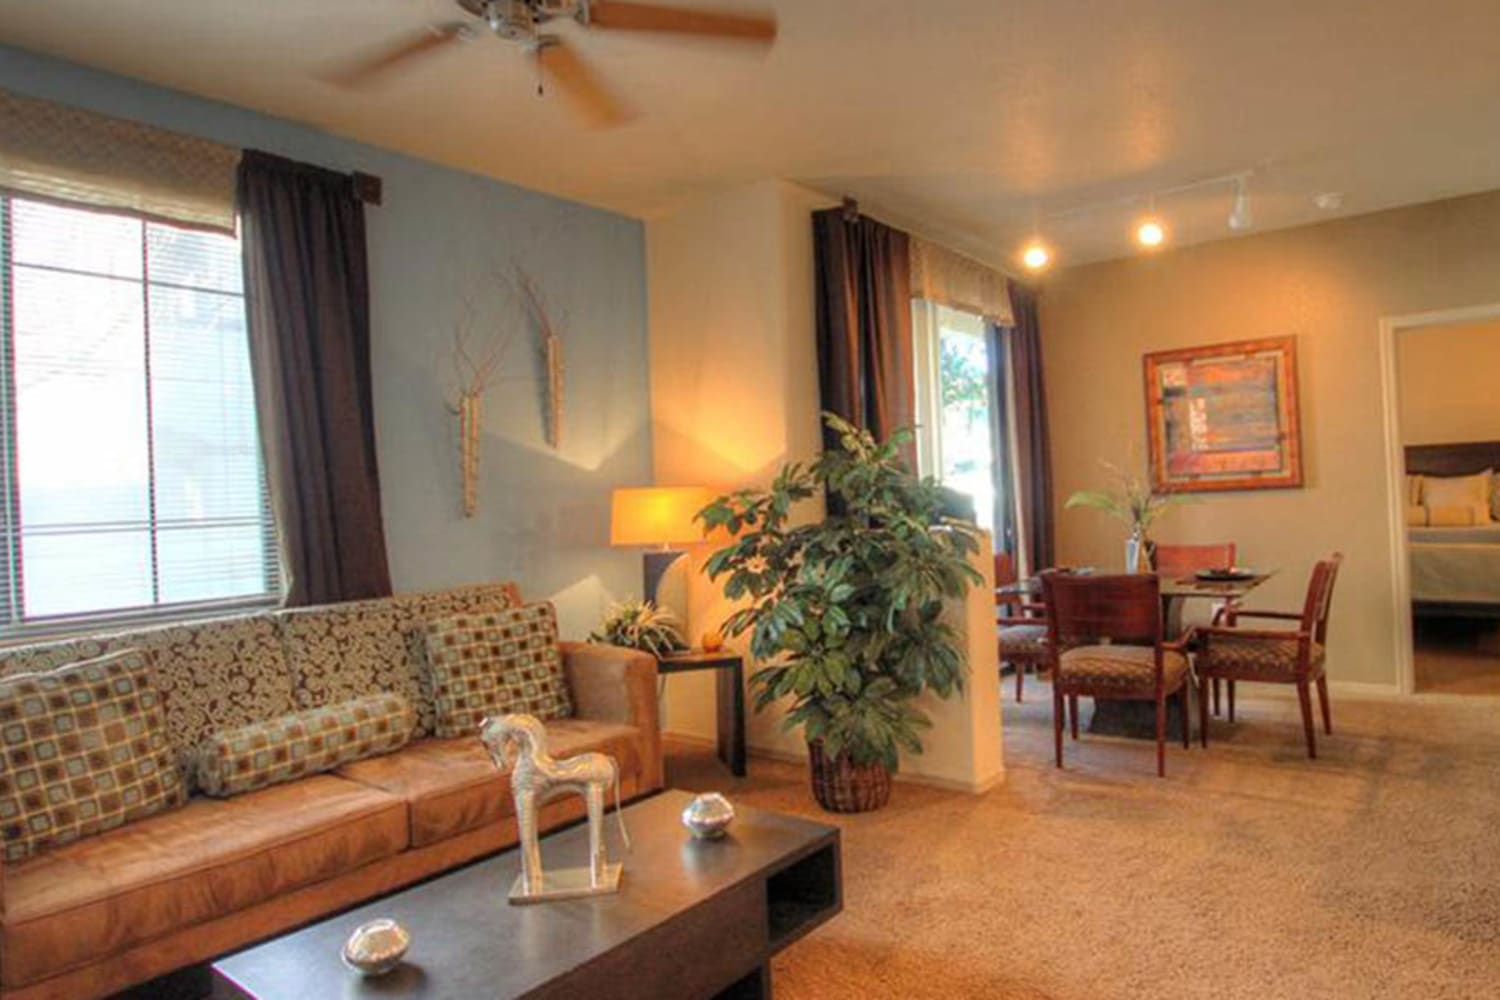 Dobson 2222 in Chandler, Arizona, offers open living room and dining room floor plans